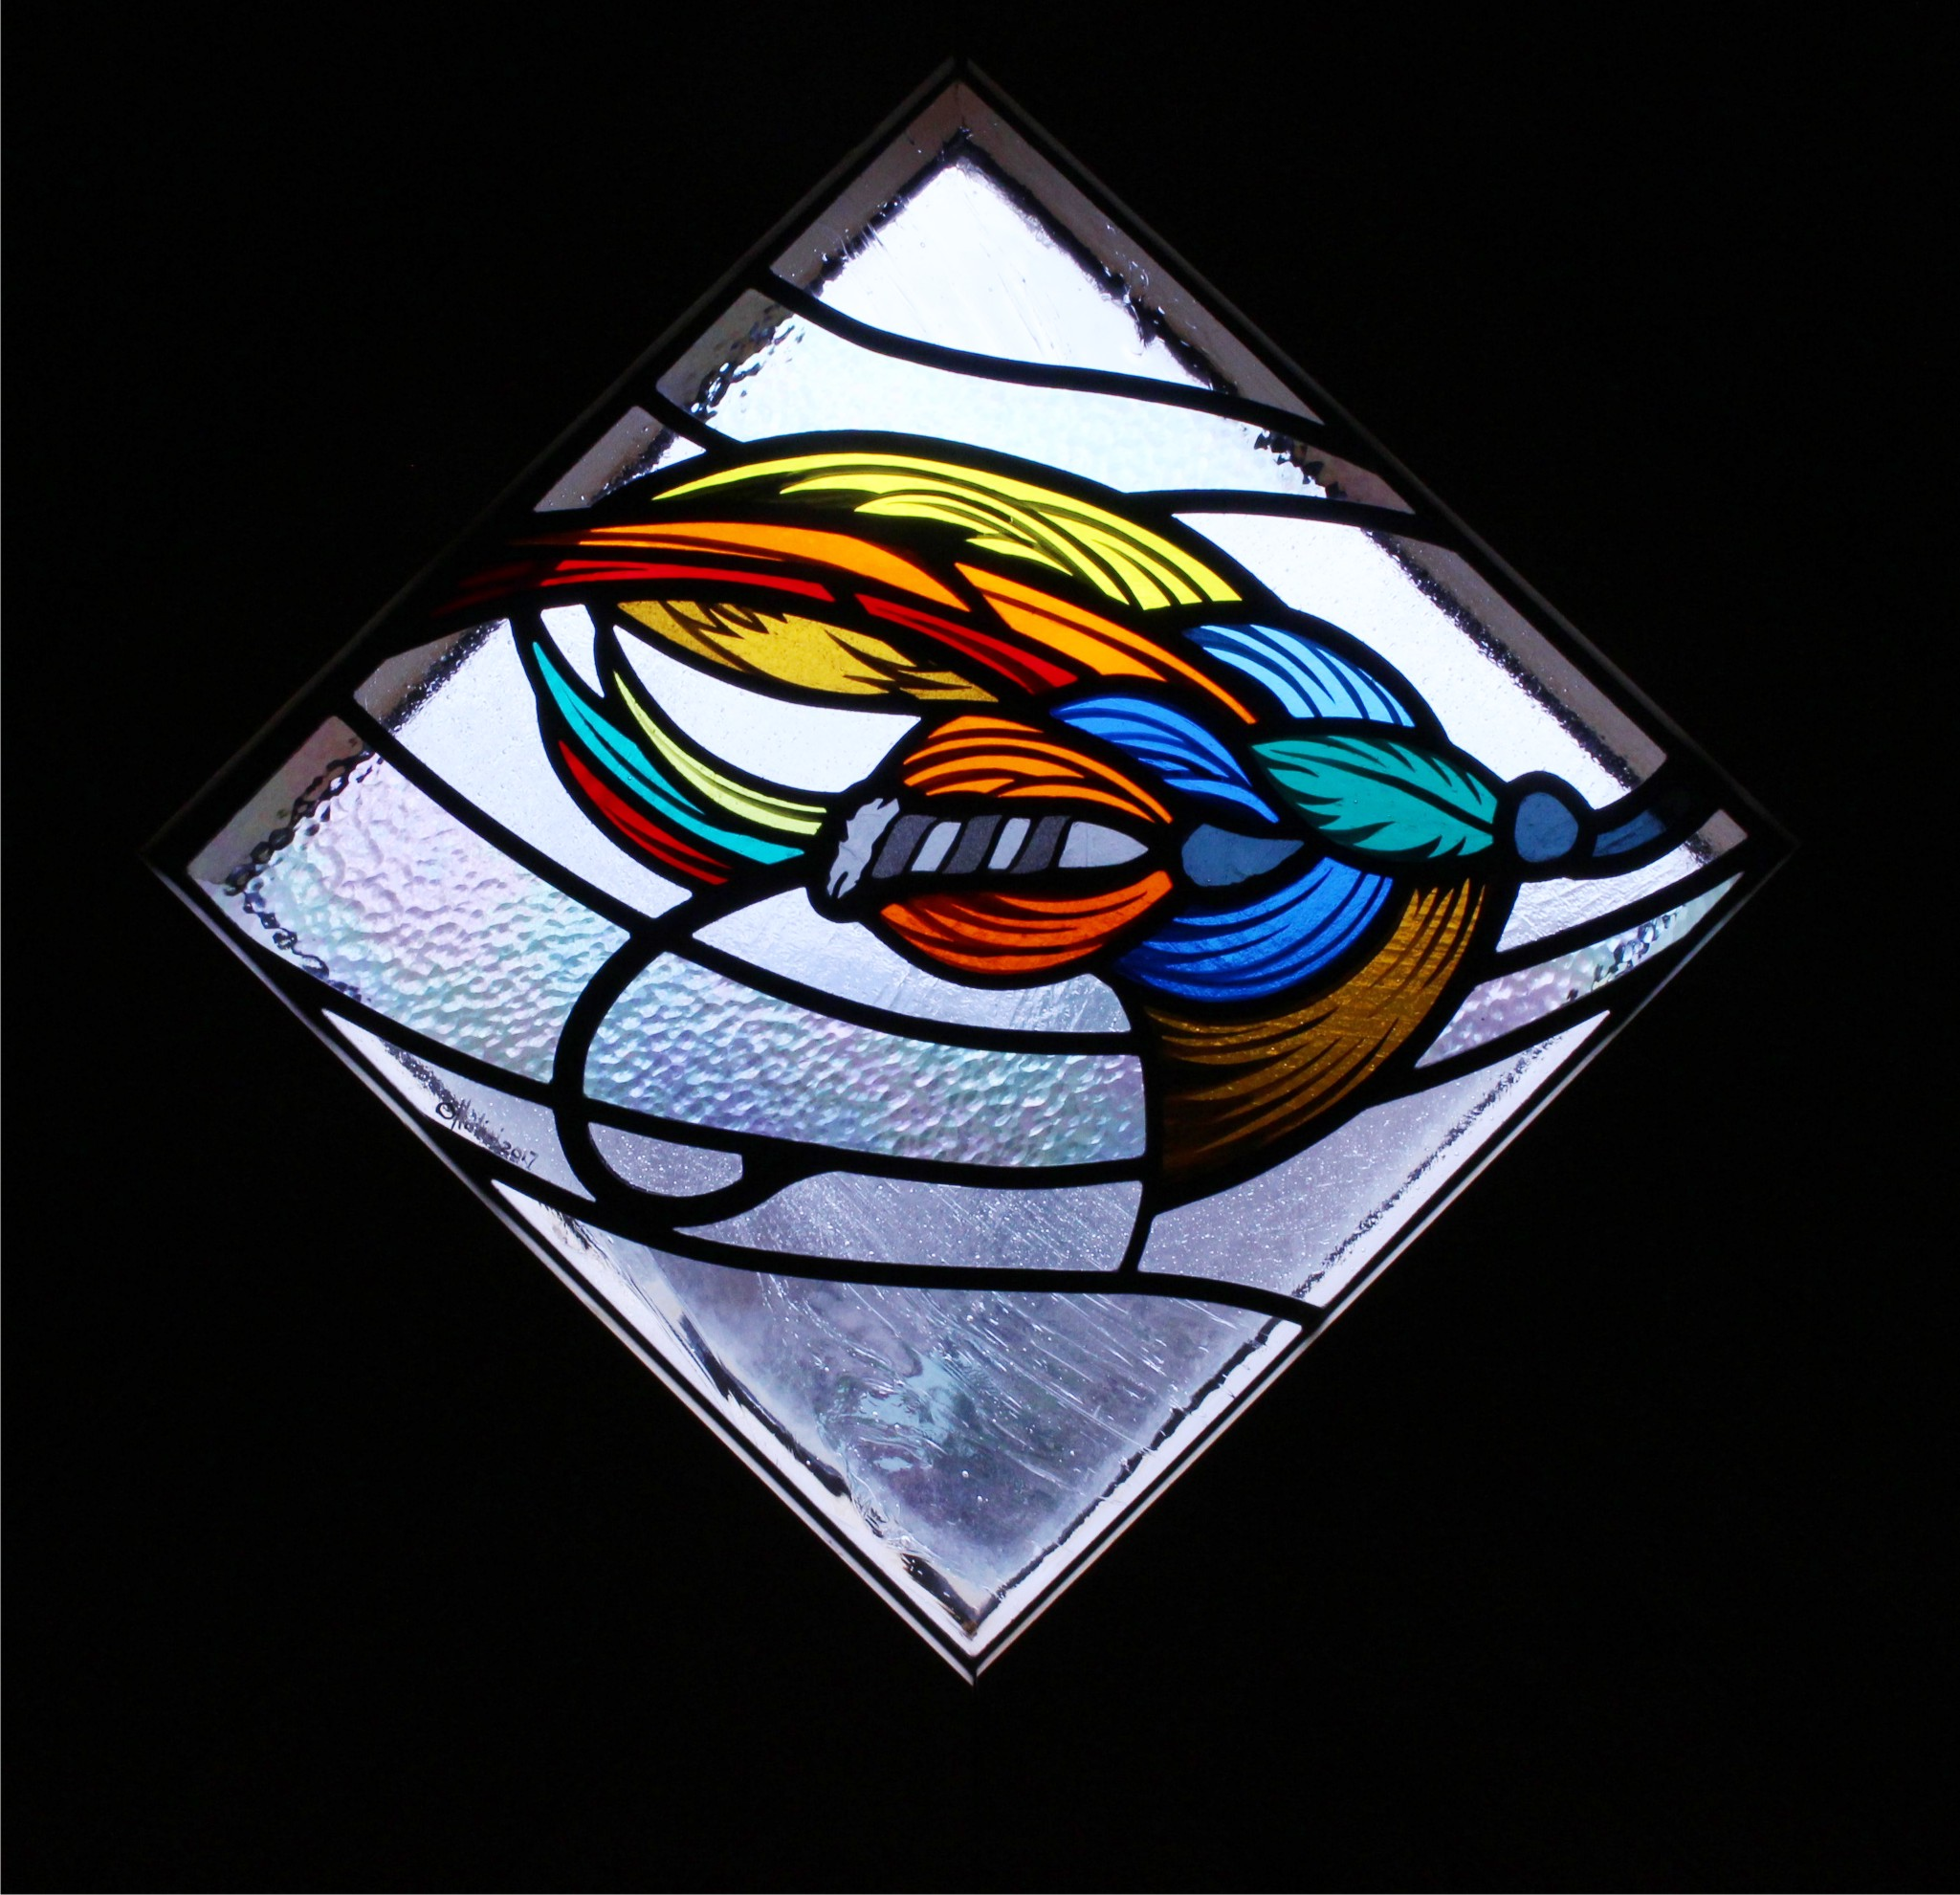 Residential stained glass